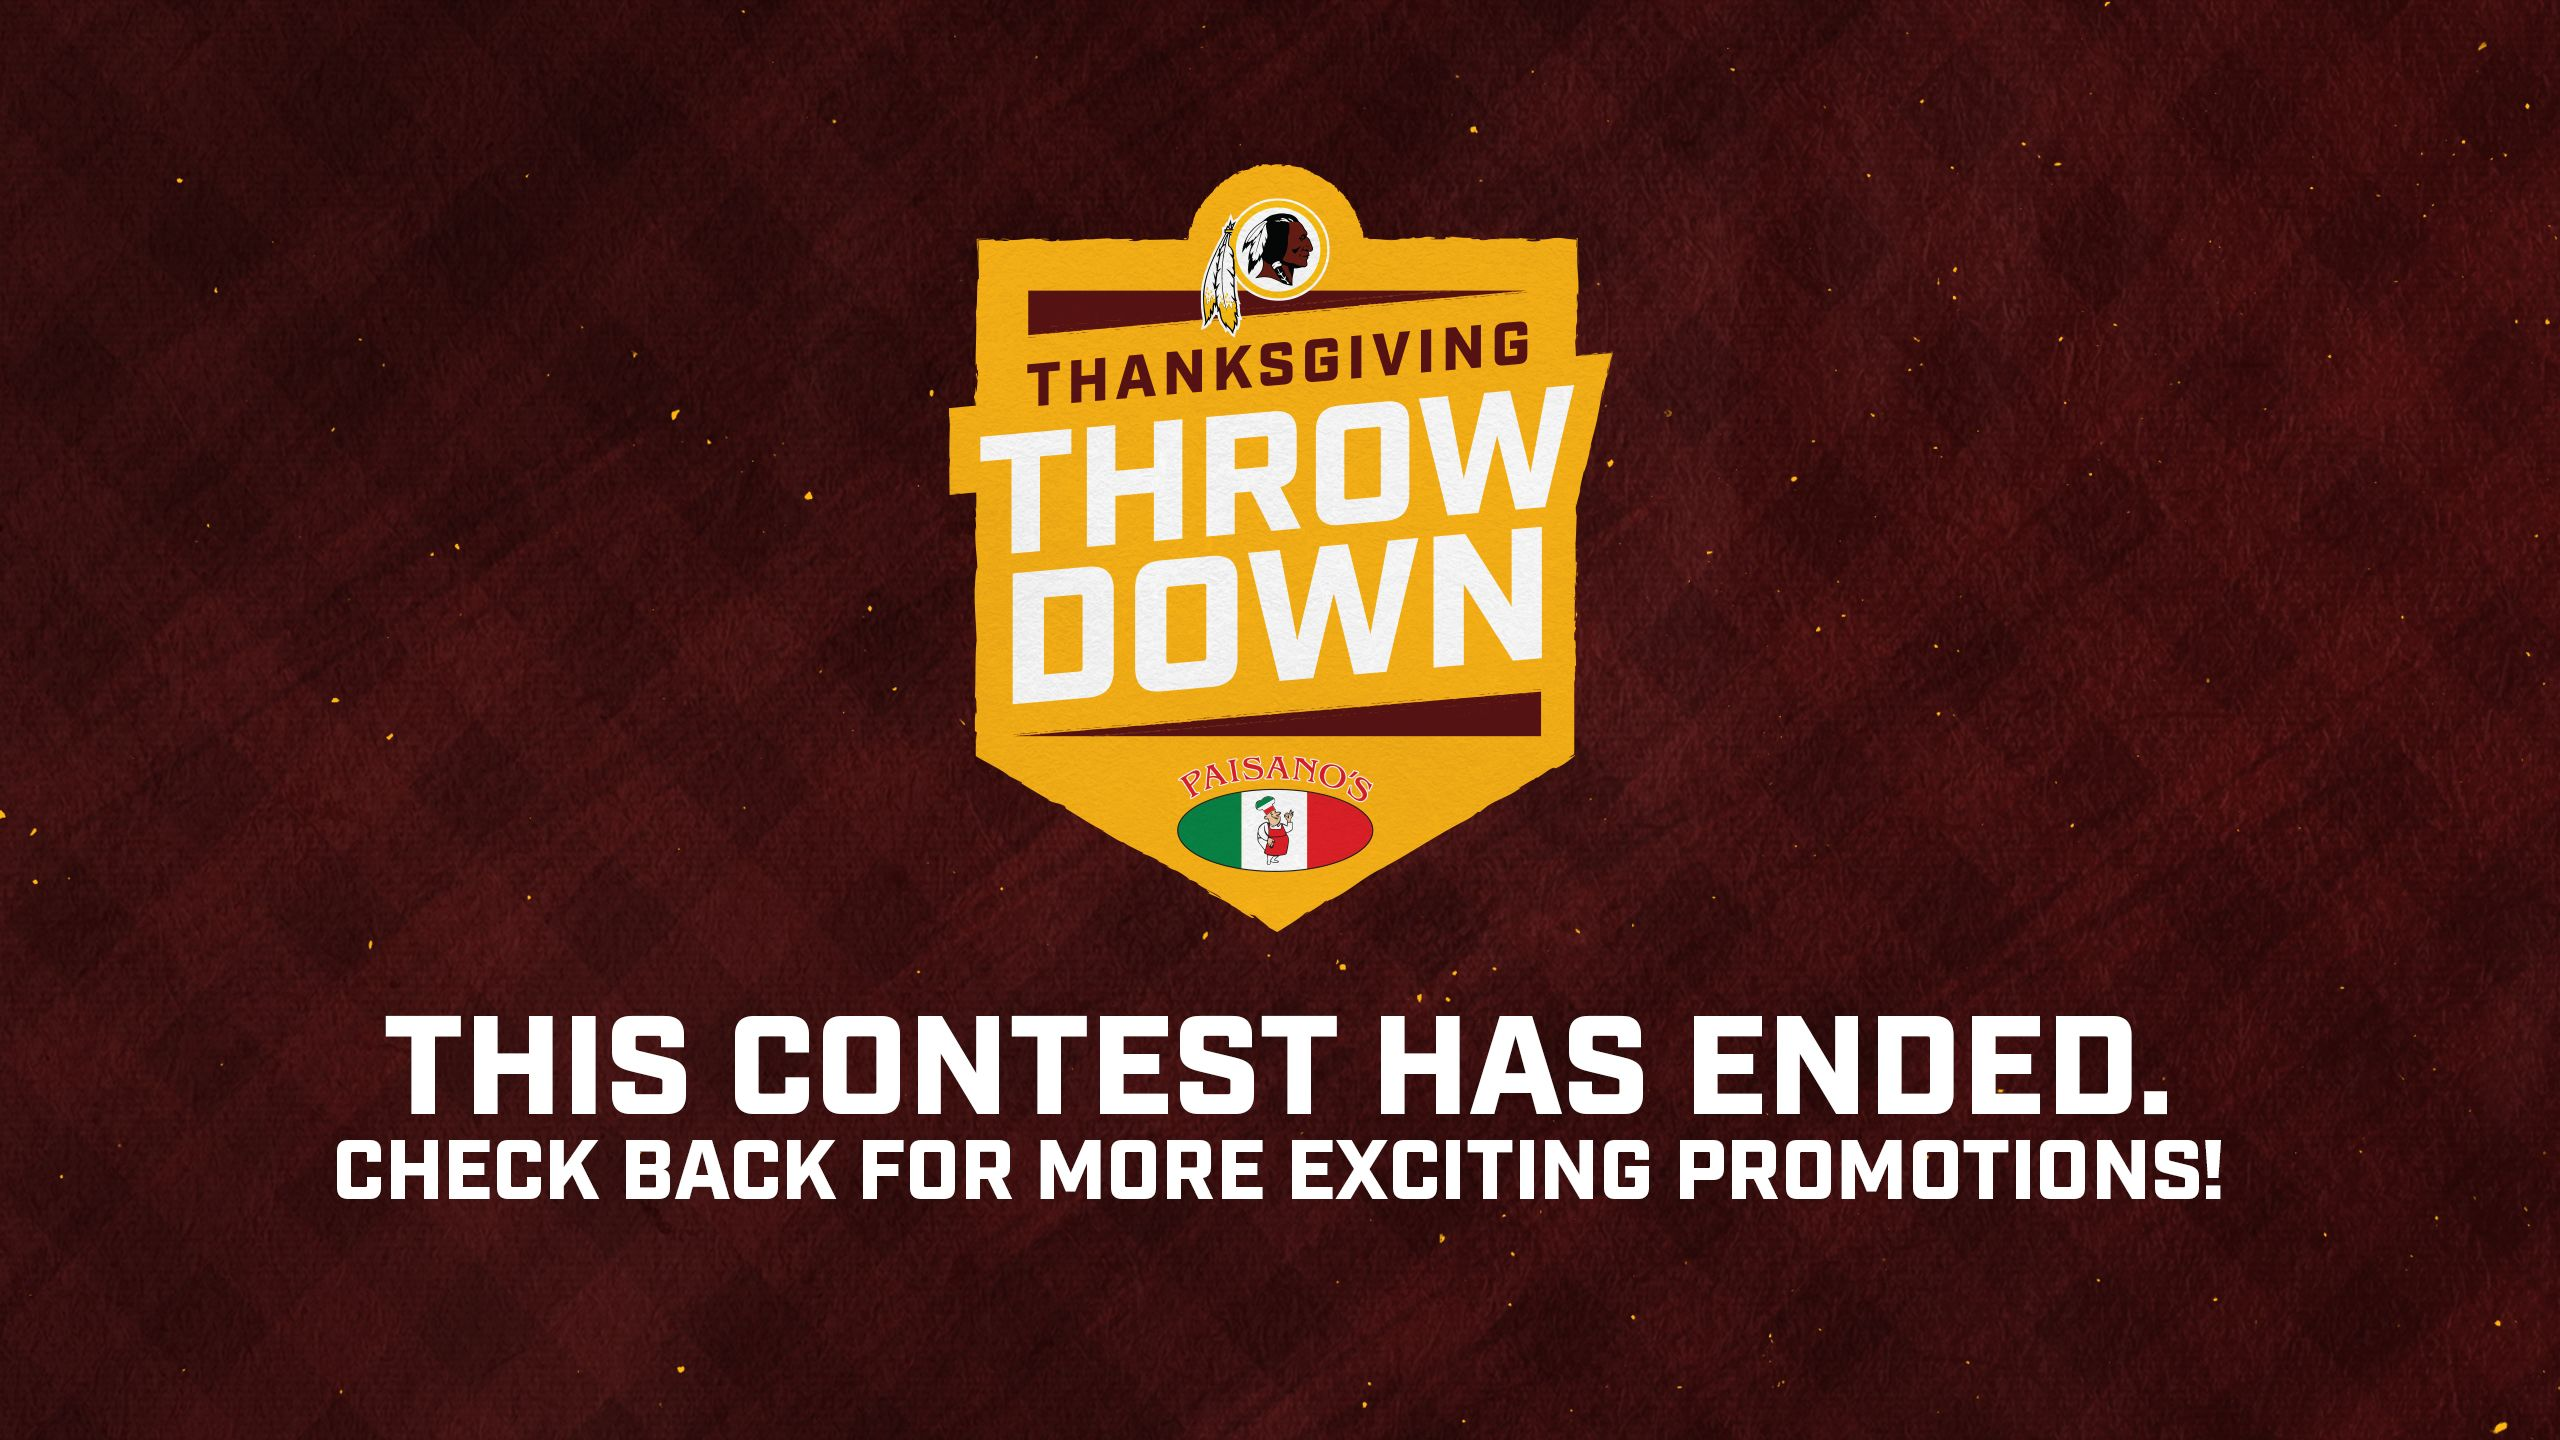 Thanksgiving_throwdown-website-header-ended